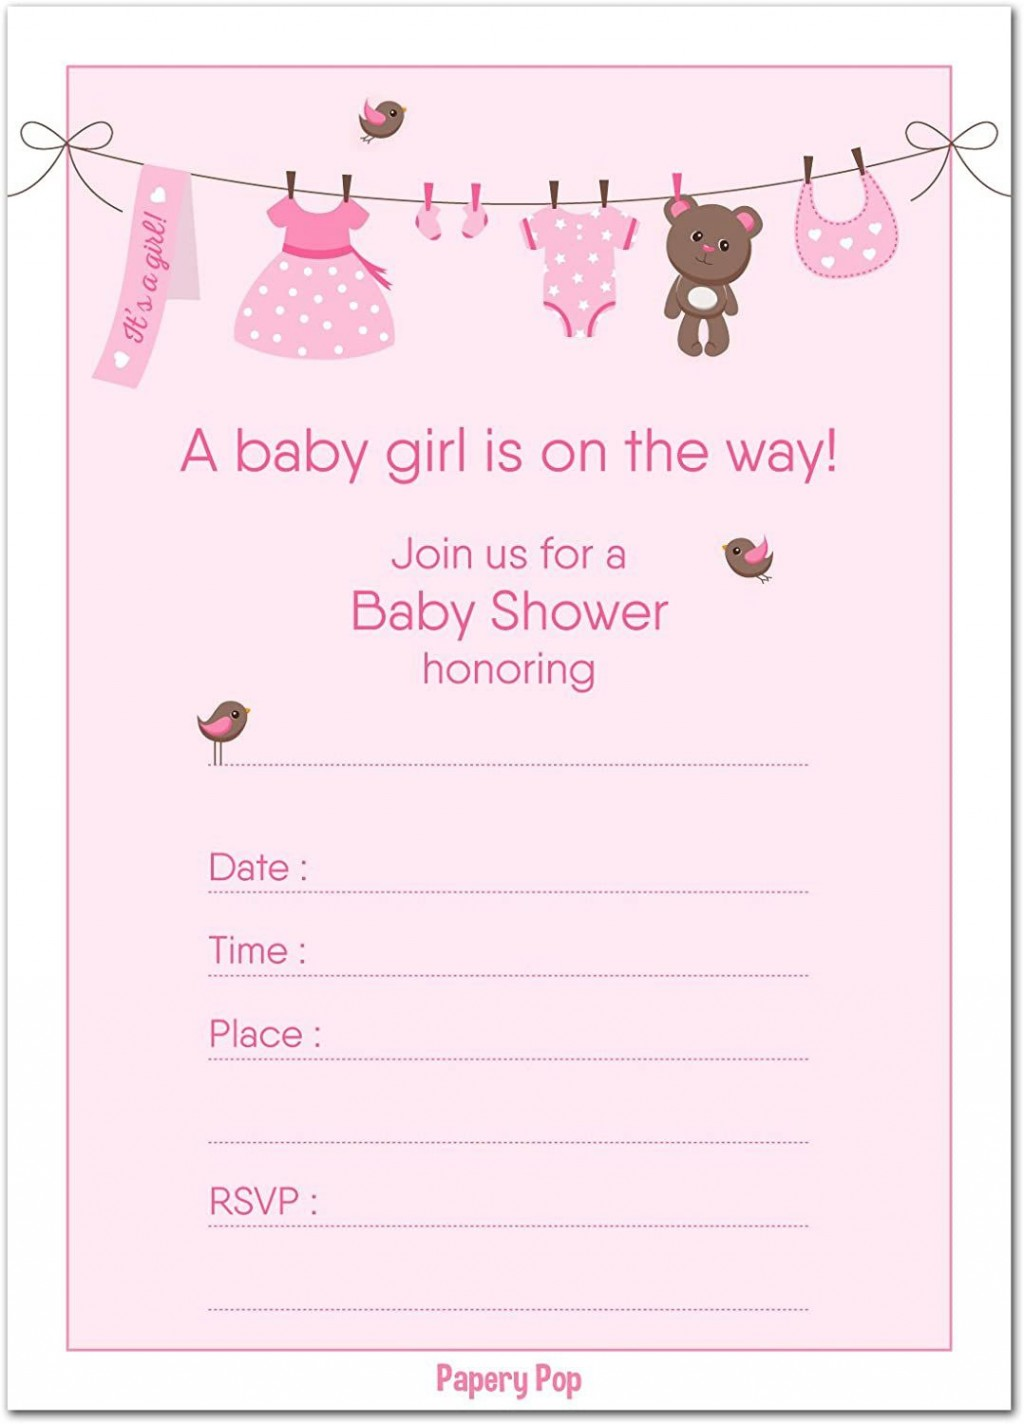 001 Unforgettable Baby Shower Template Girl Photo  Nautical Invitation Free For WordLarge